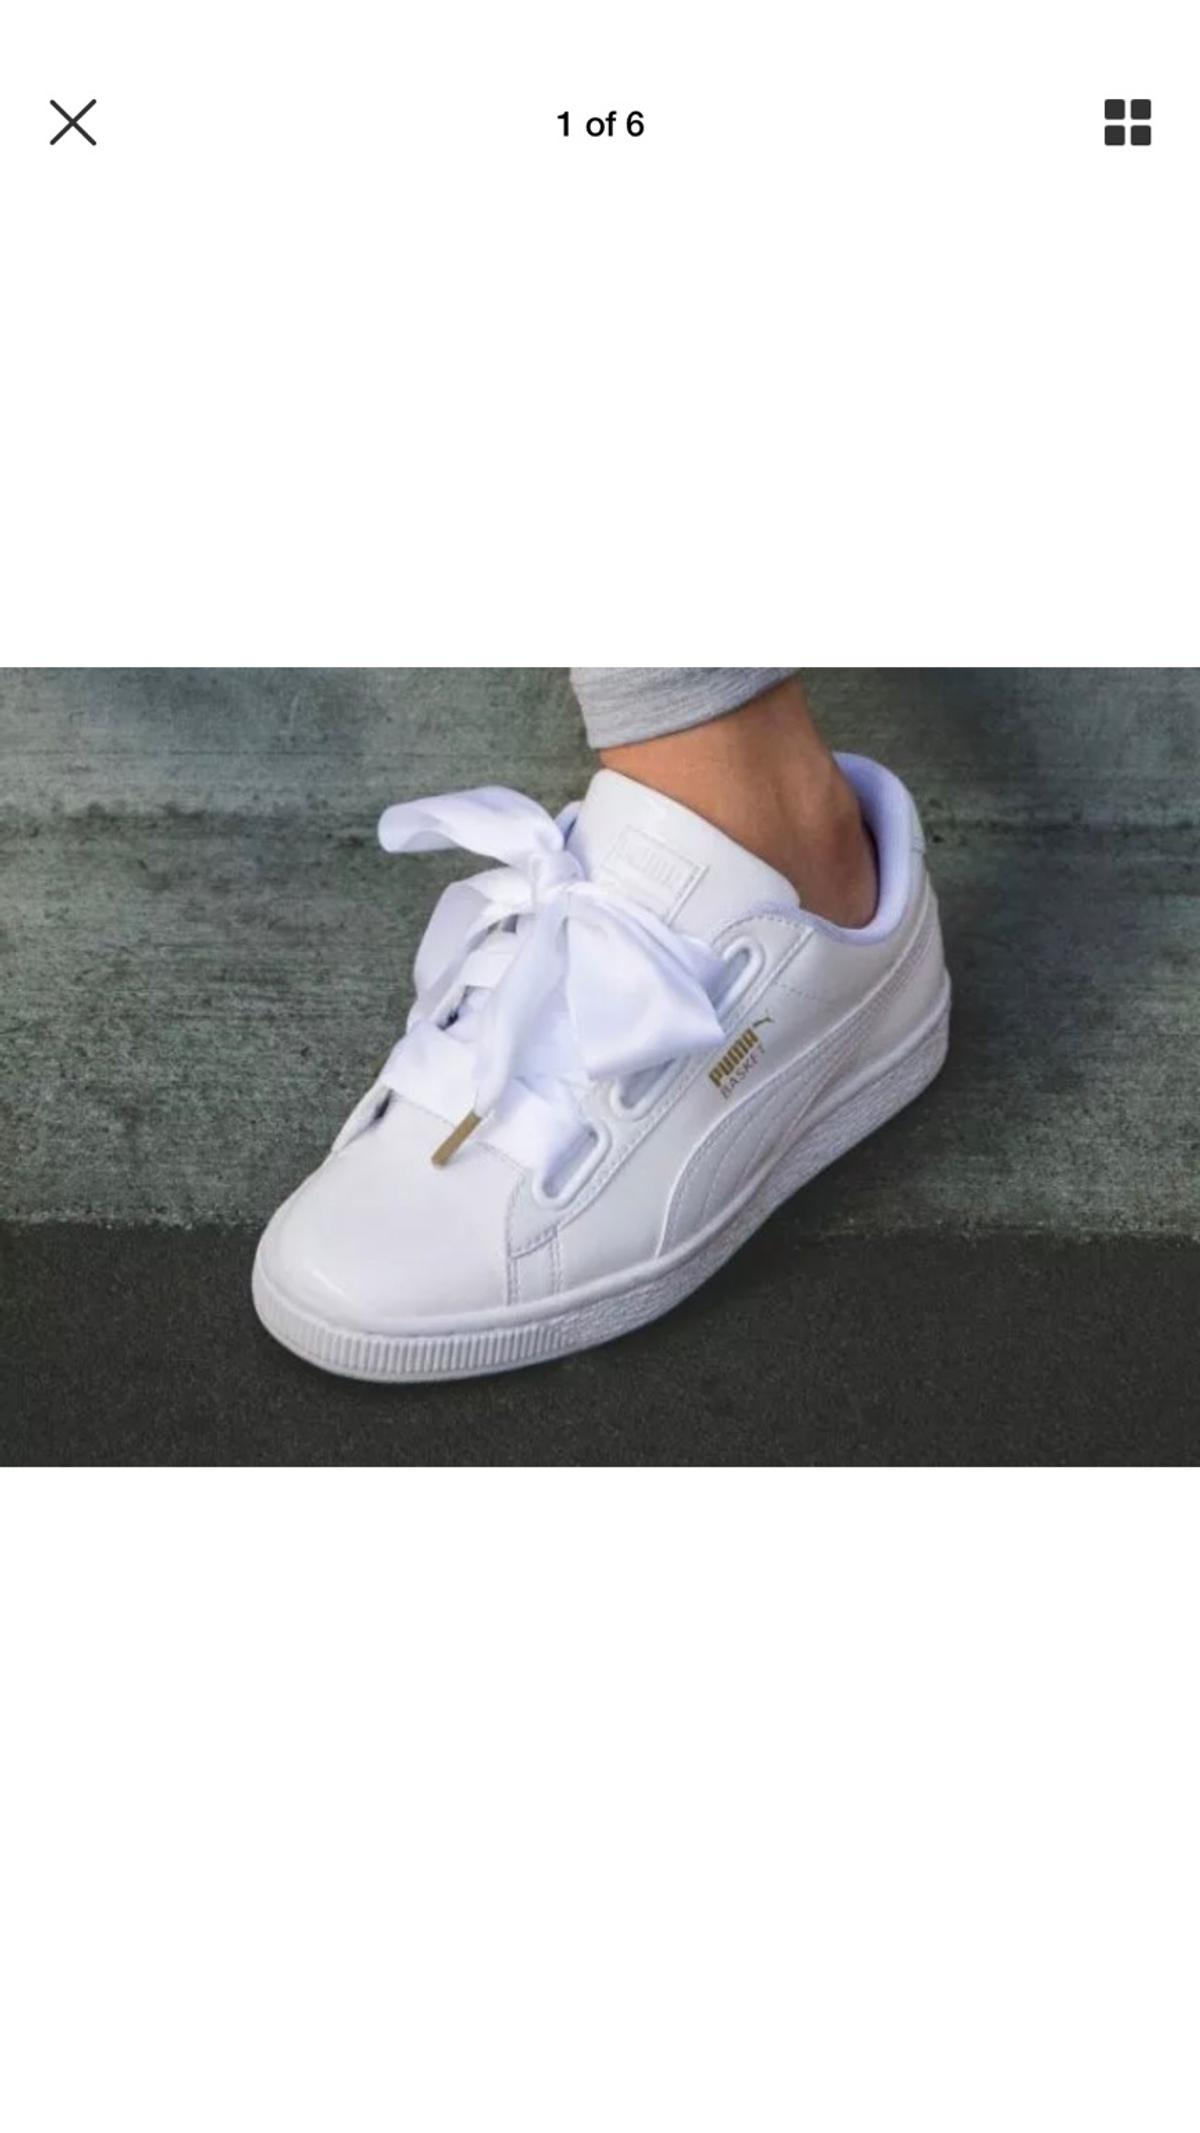 finest selection 01e0e 1494d Newpuma basket heart trainers in patent white in NG8 ...